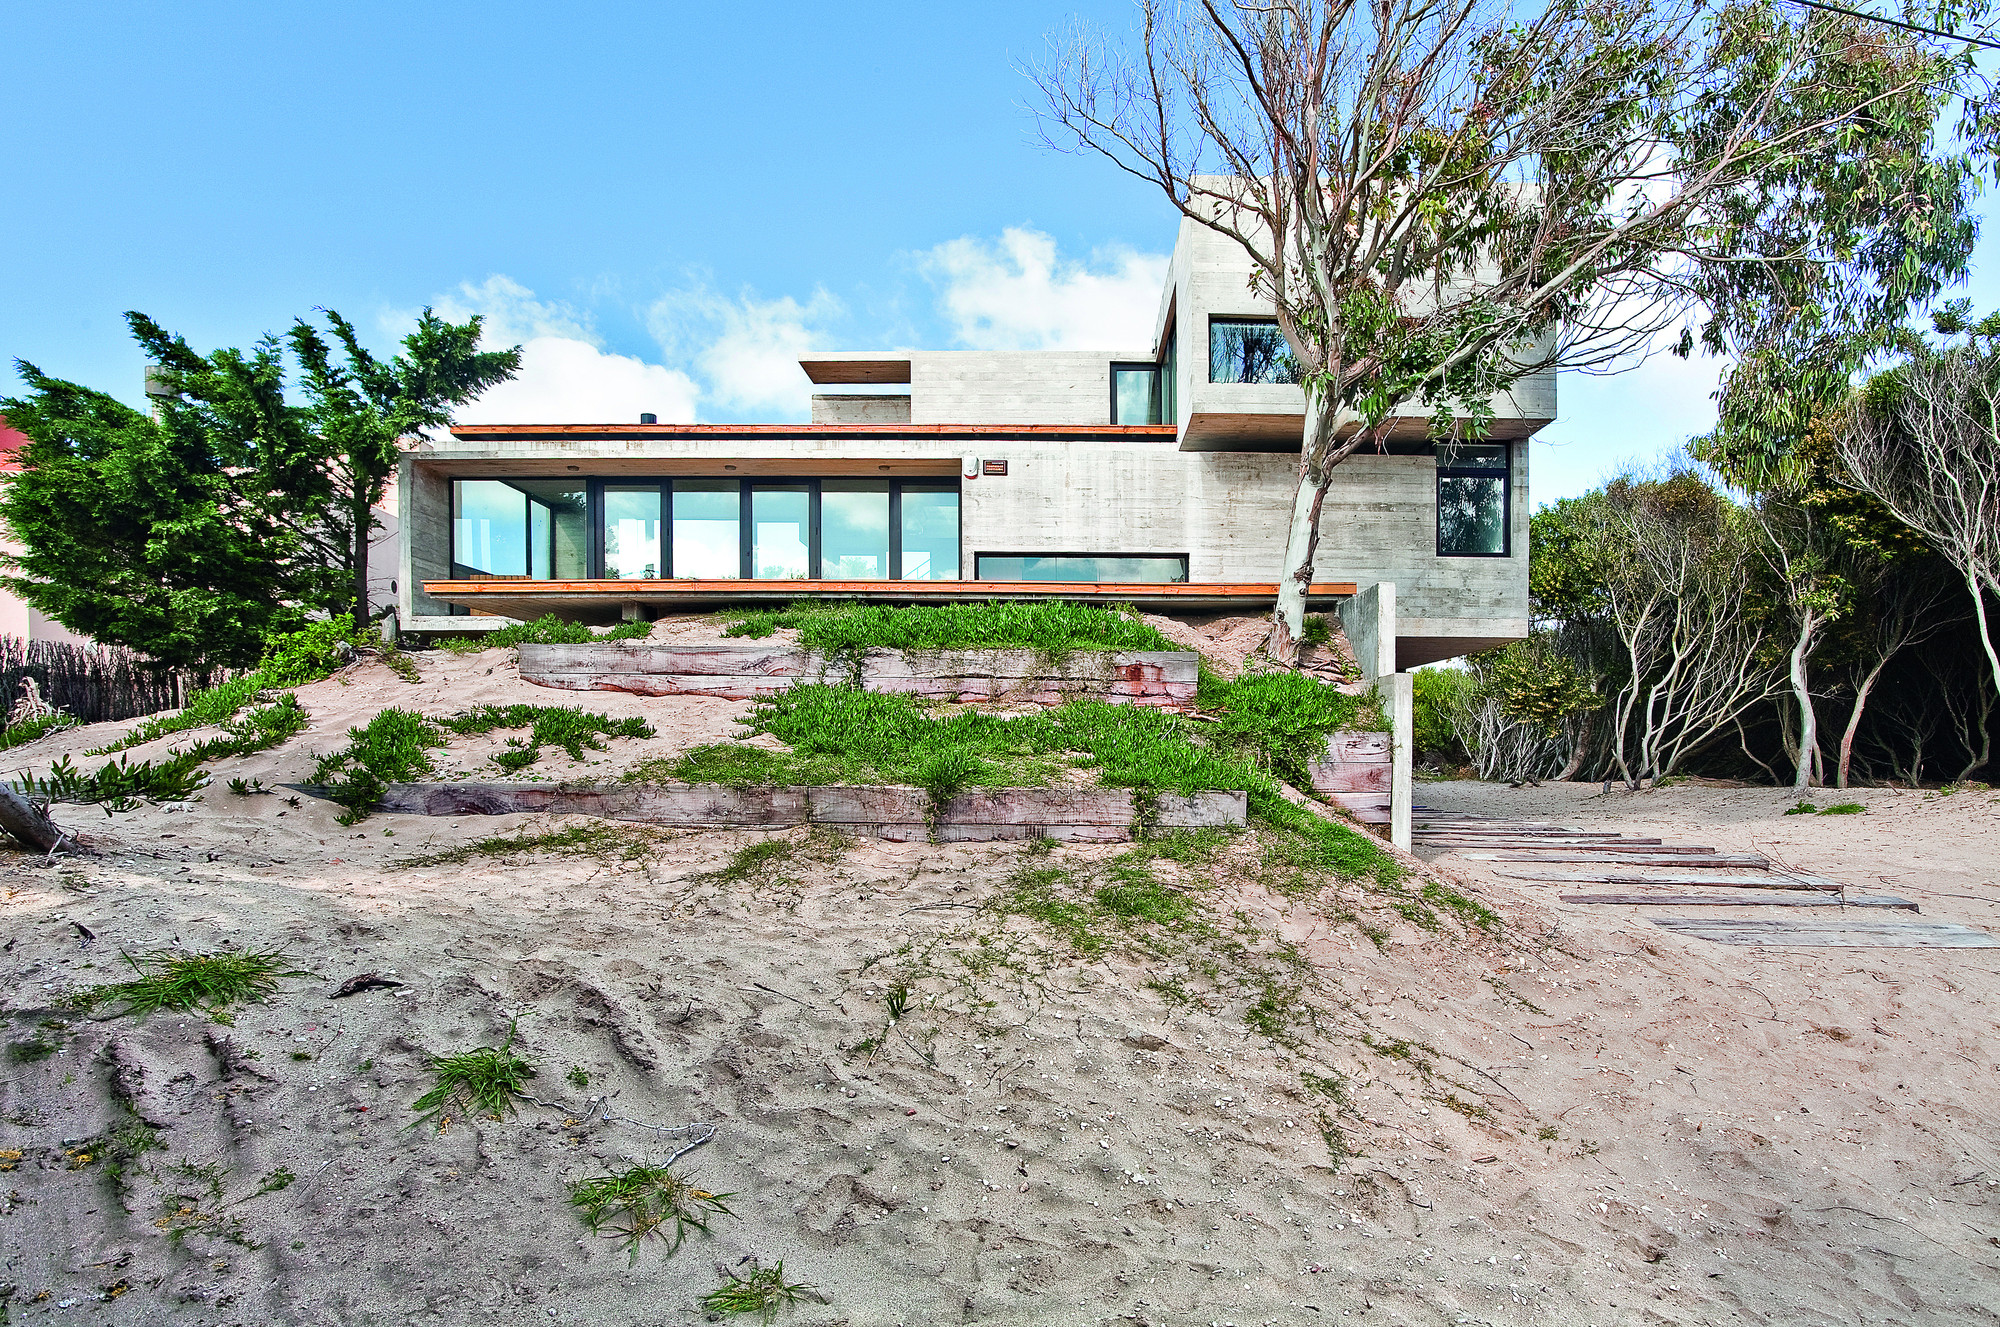 House On The Beach Bak Architects